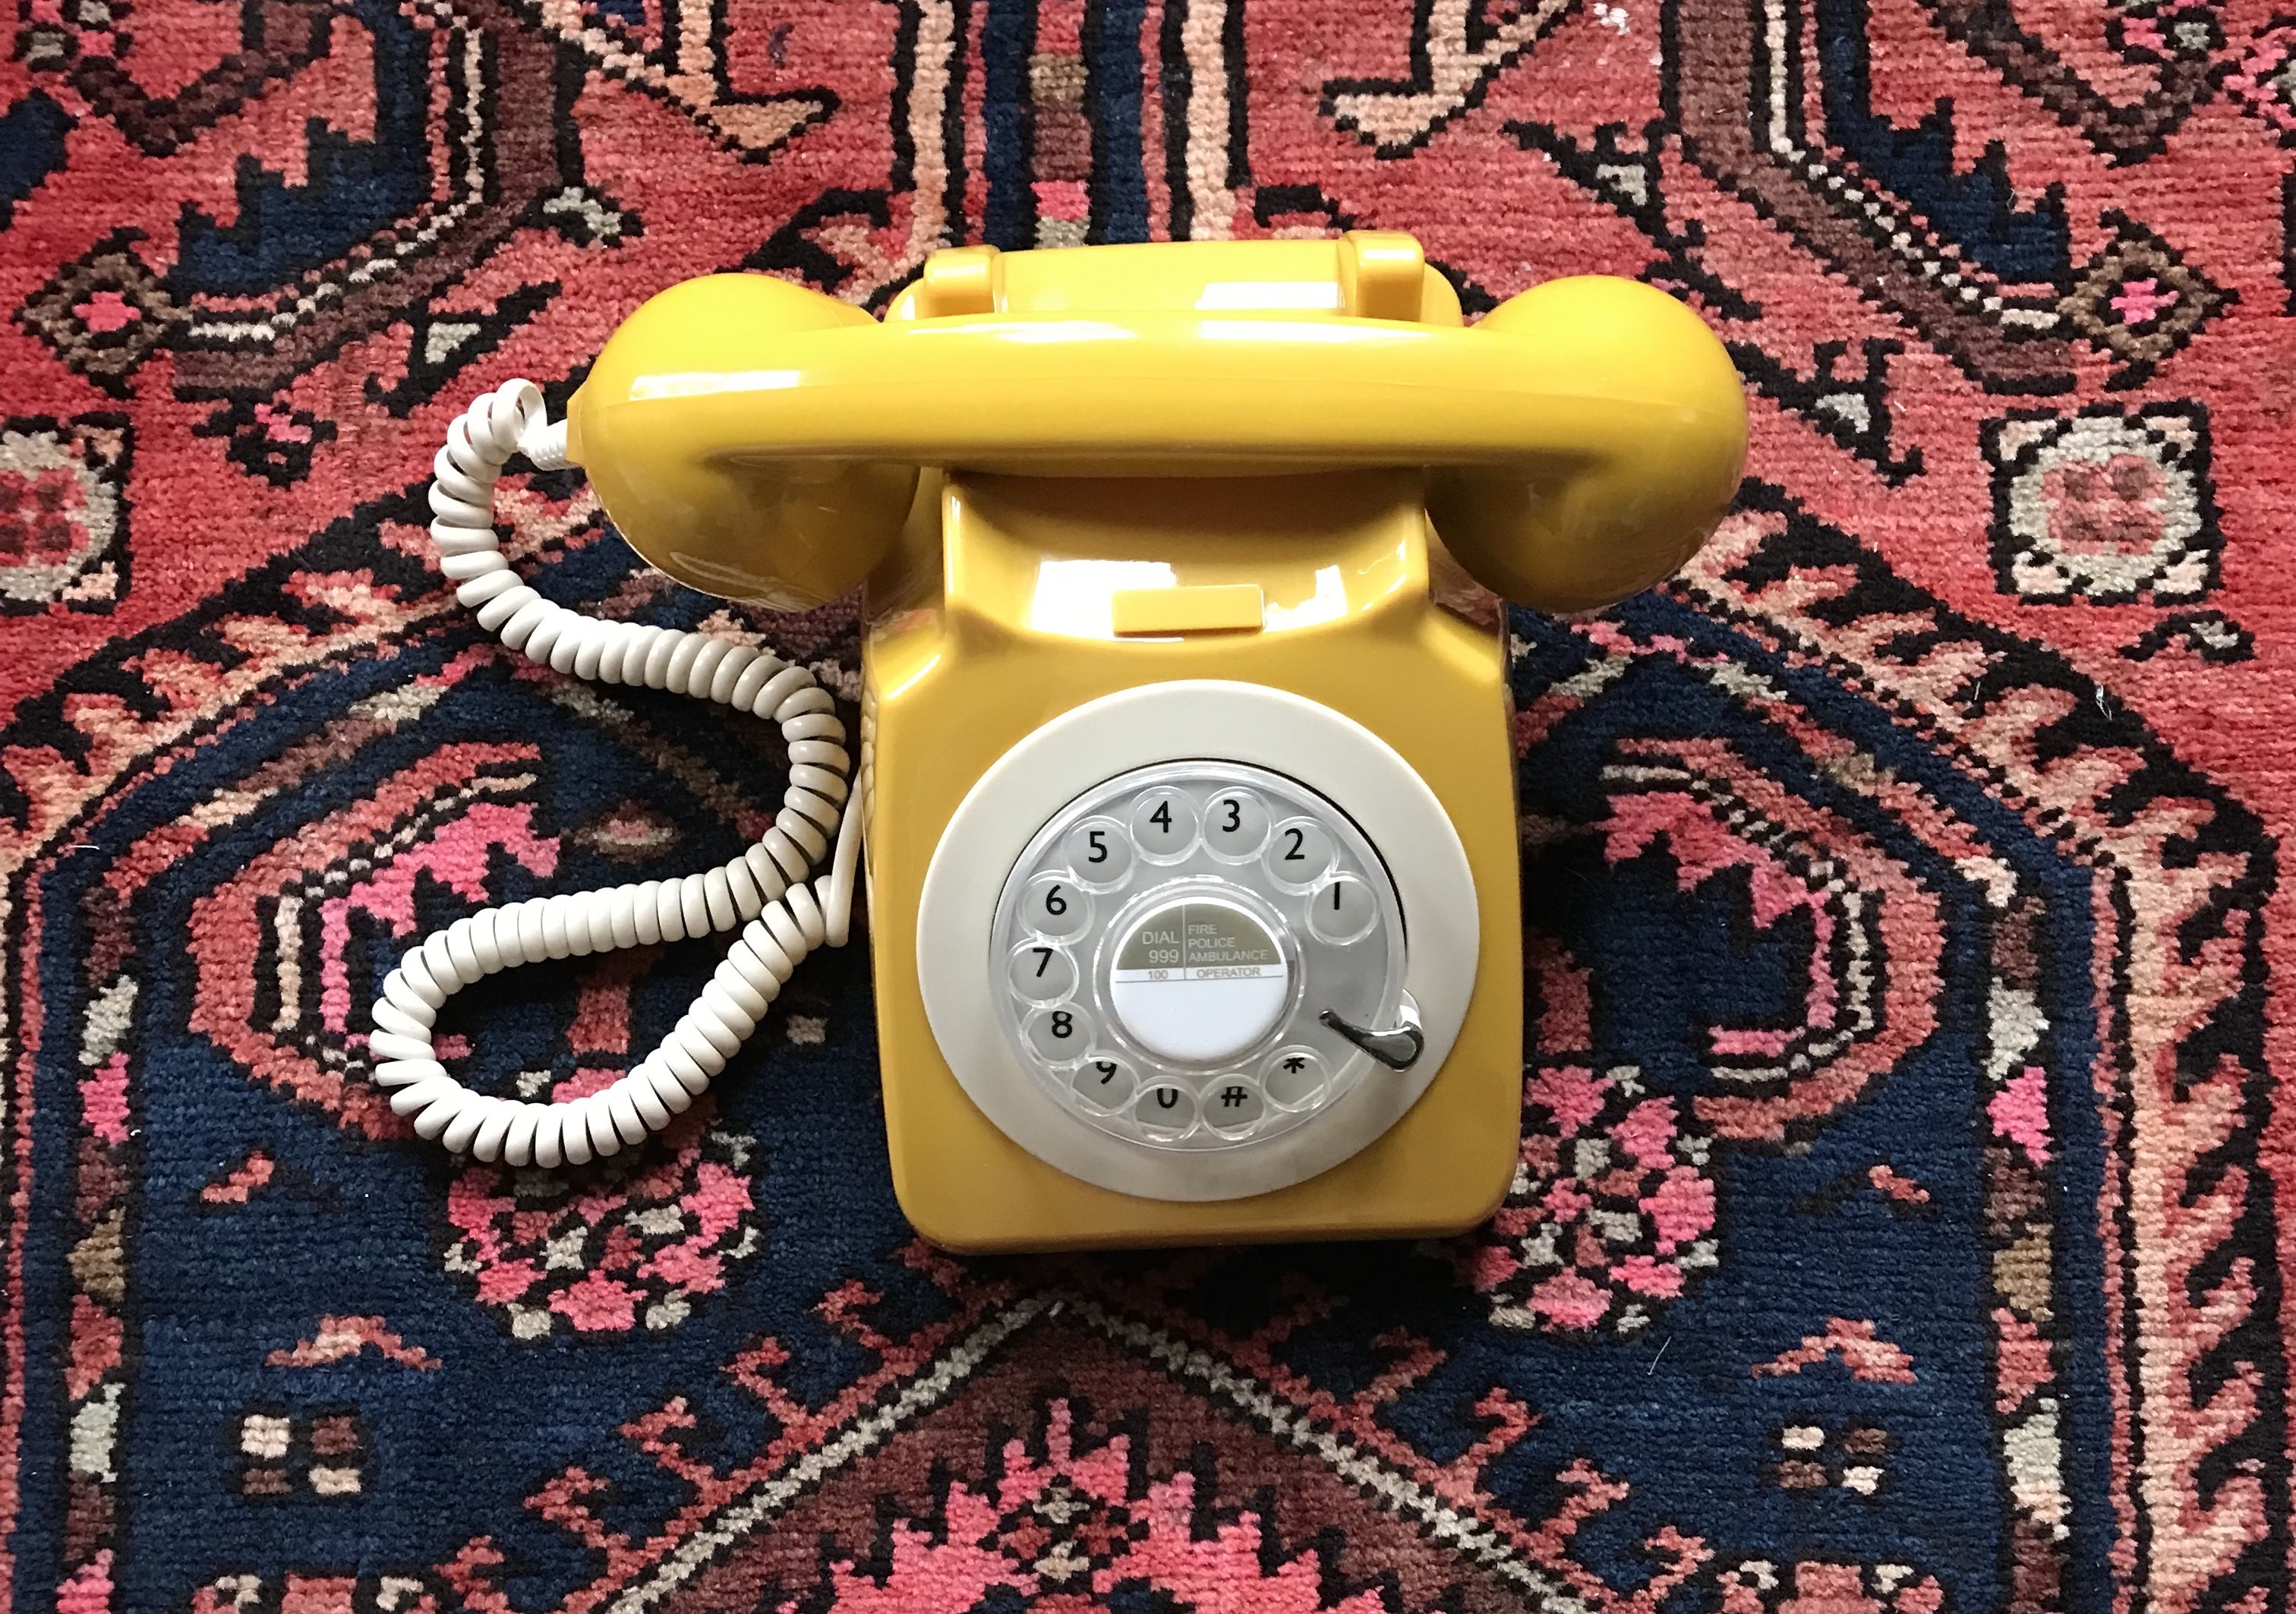 Old-school yellow rotary phone on carpet.